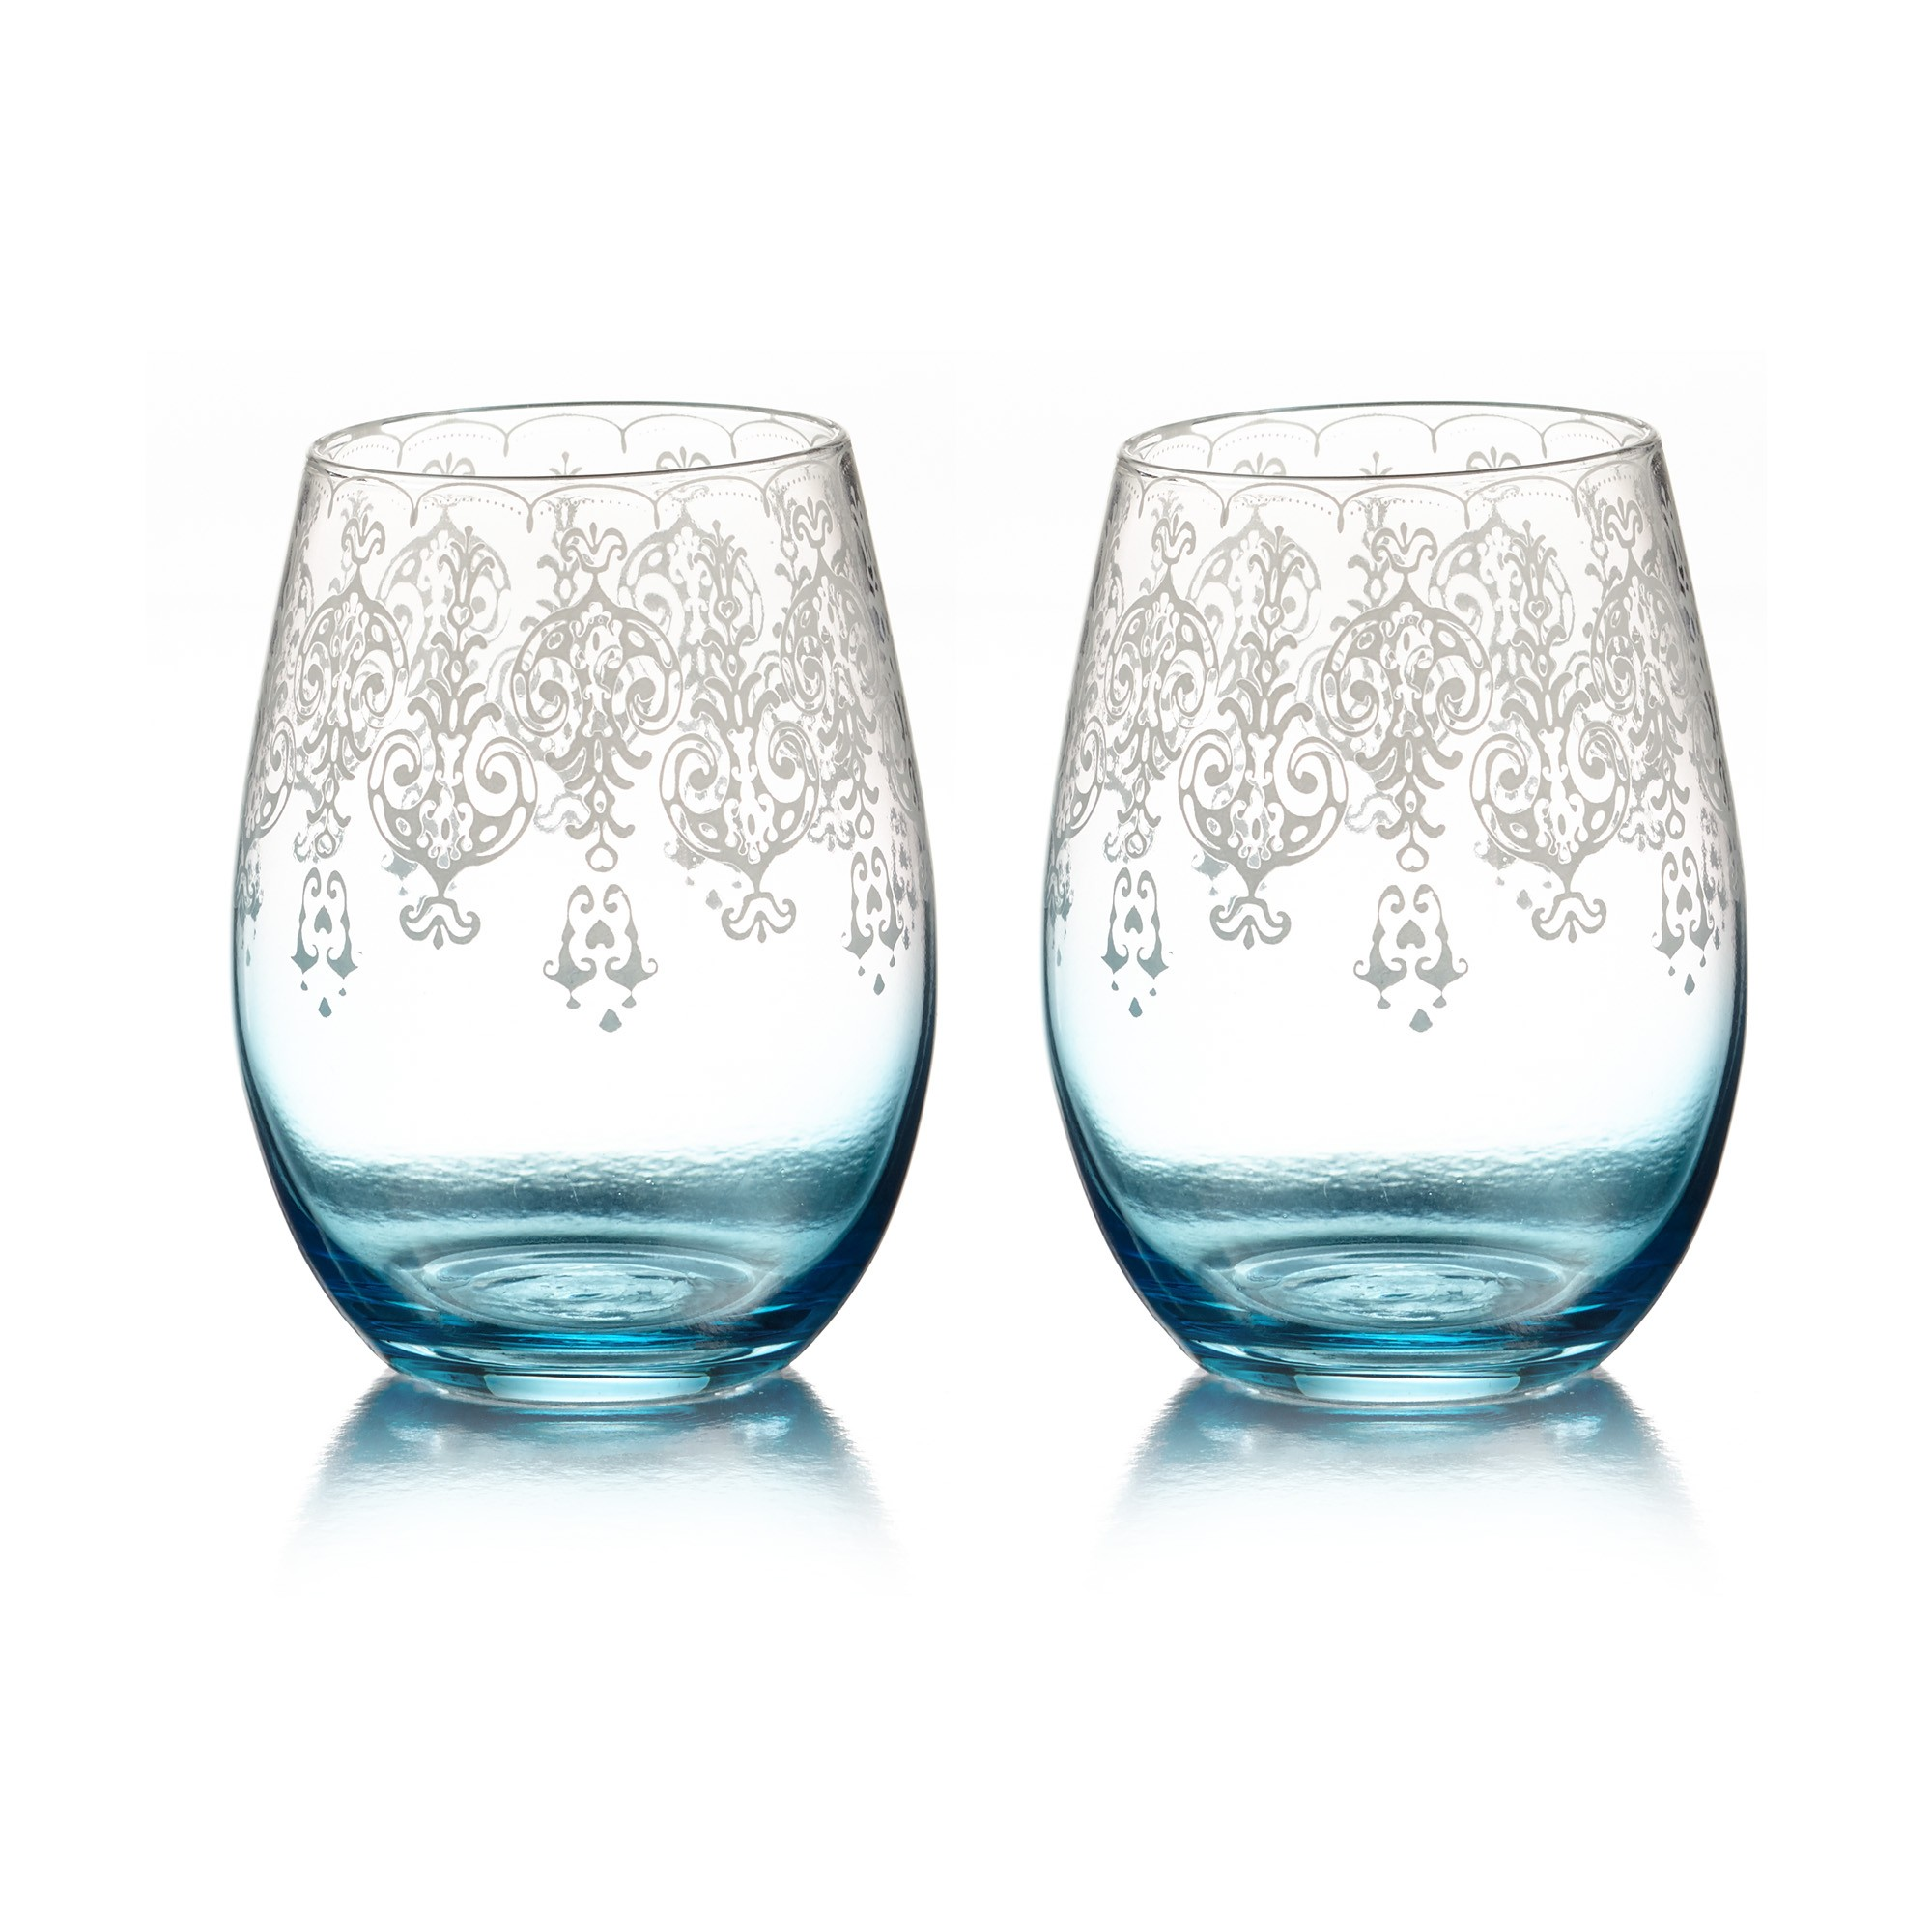 Fifth Avenue Crystal Lace Set of 2 Stemless Glasses